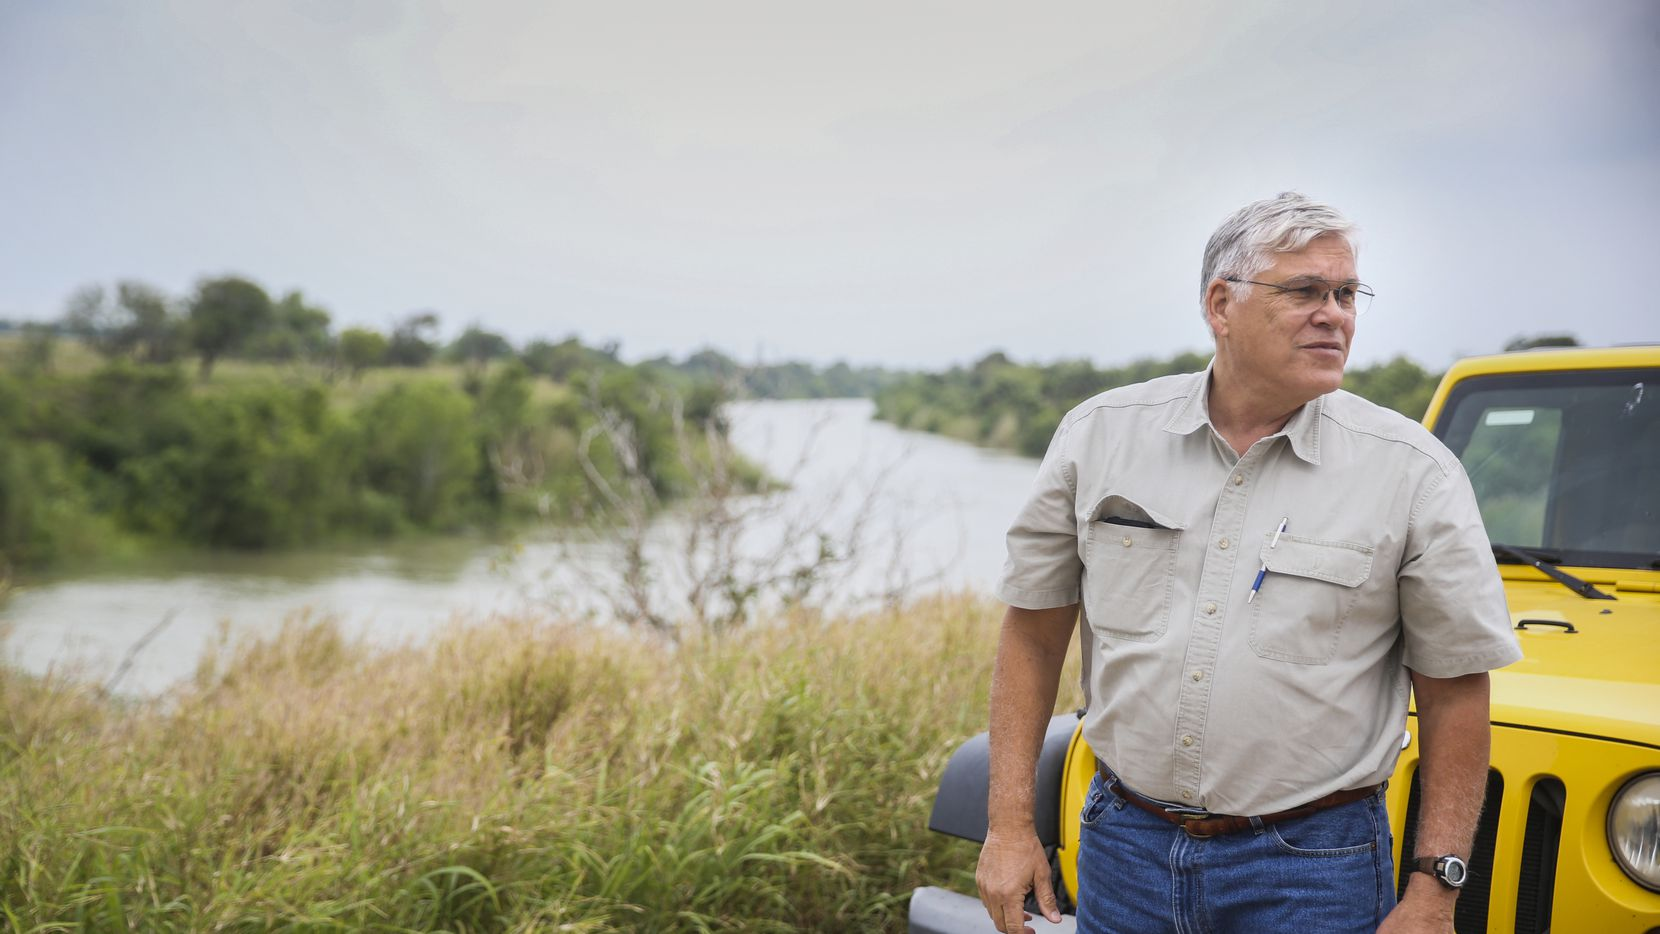 Frank Schuster patrols his farm land along the border of the United States and Mexico in Texas' Rio Grande Valley on April 29, 2019. (Ryan Michalesko/The Dallas Morning News)